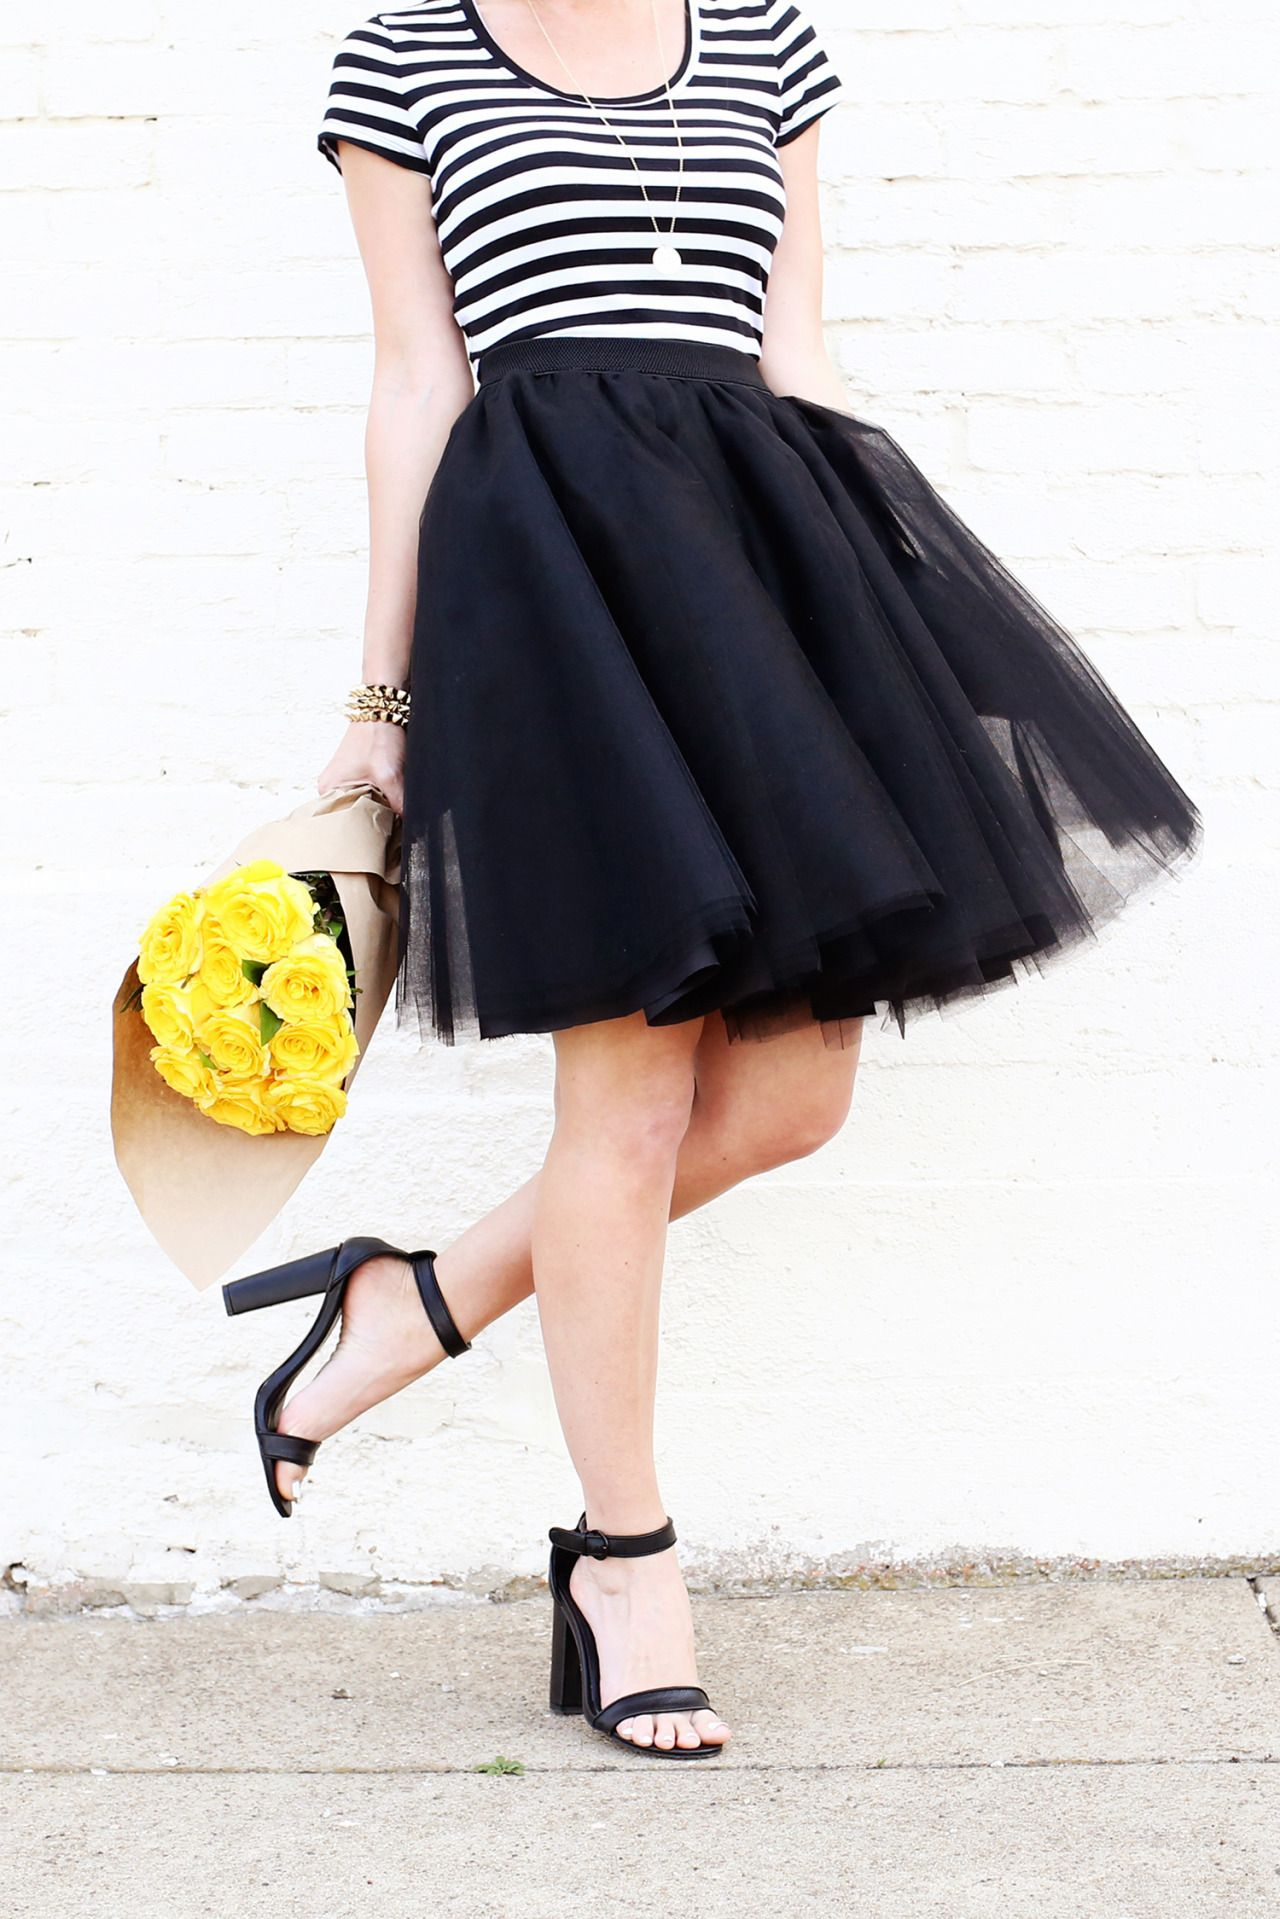 DIY Lined Tulle Skirt Tutorial from A Beautiful Mess.Make